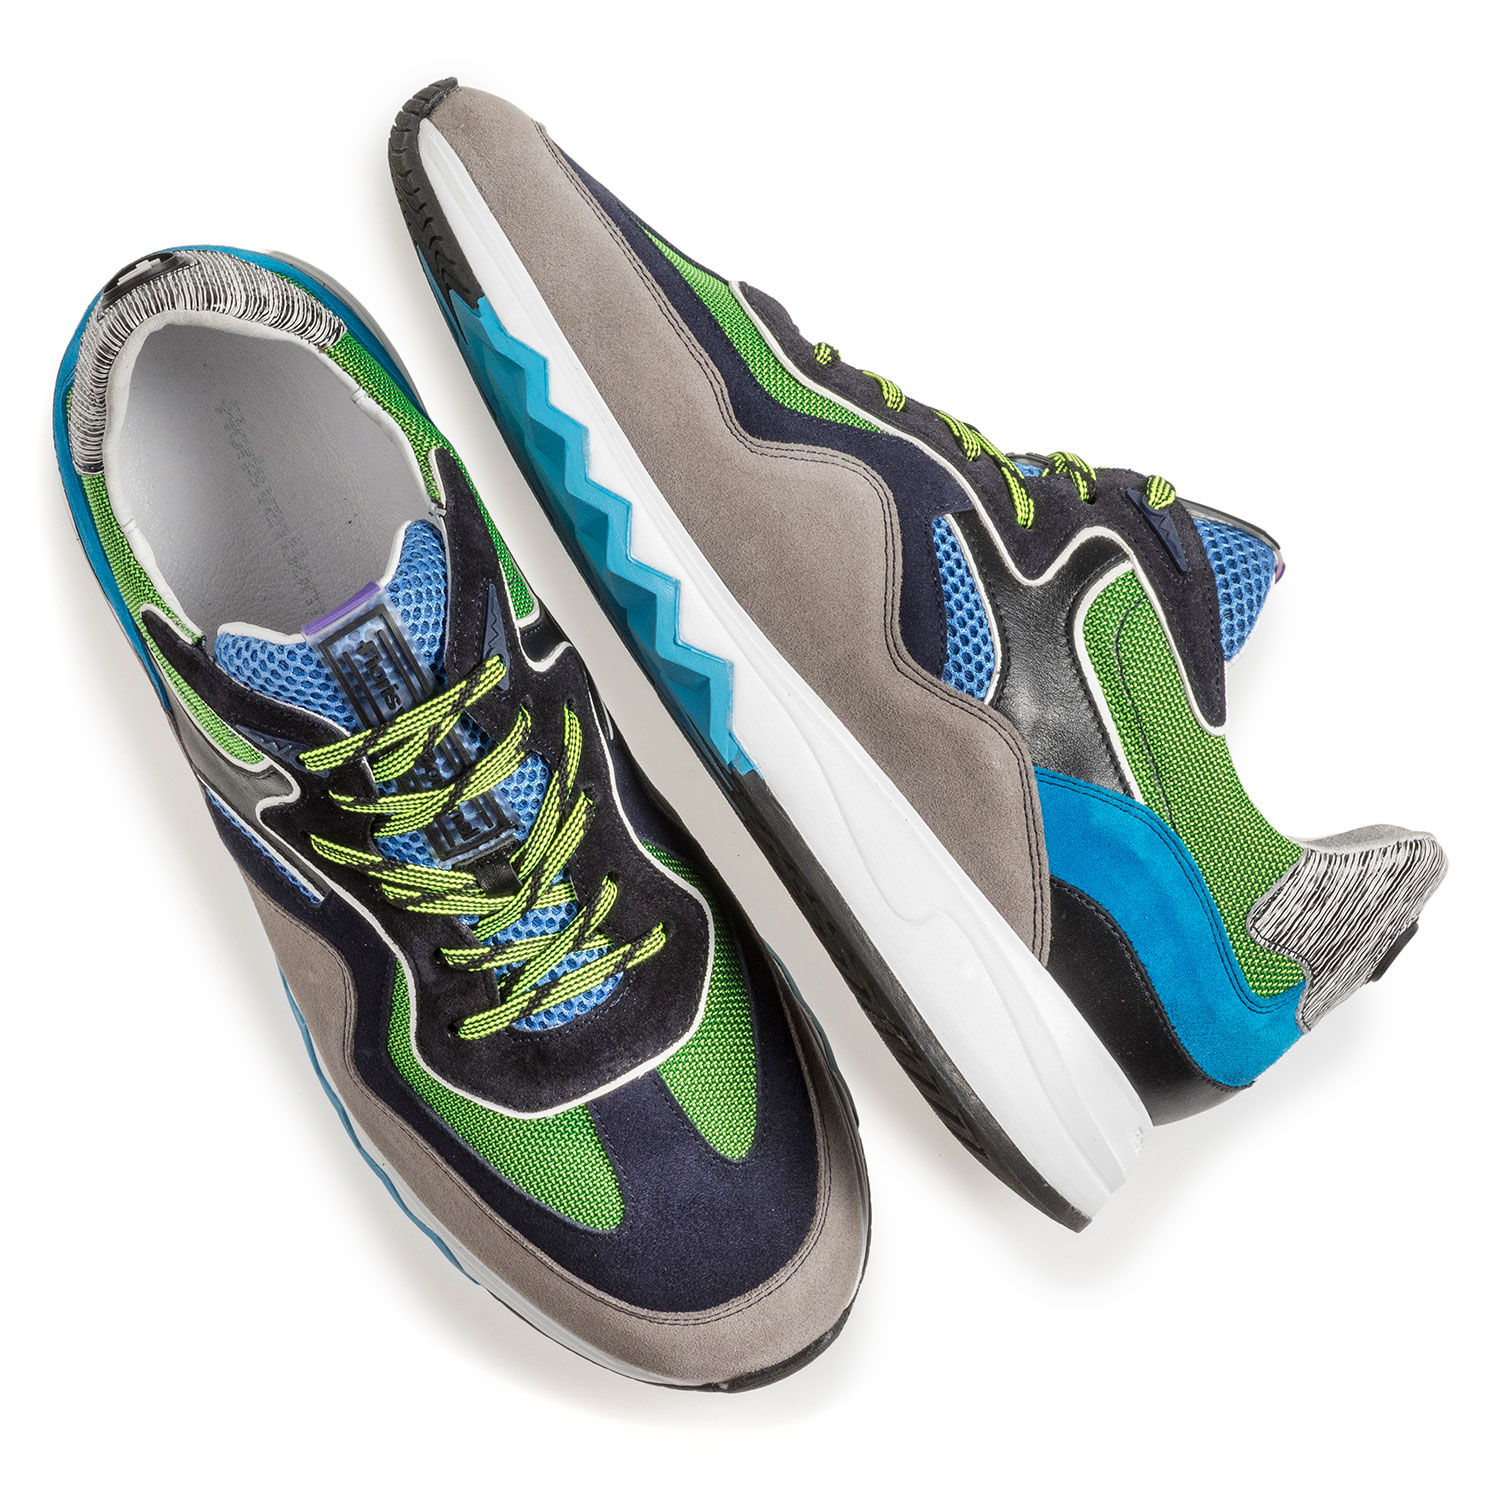 16290/00 - Multi-colour suede leather sneaker with green details